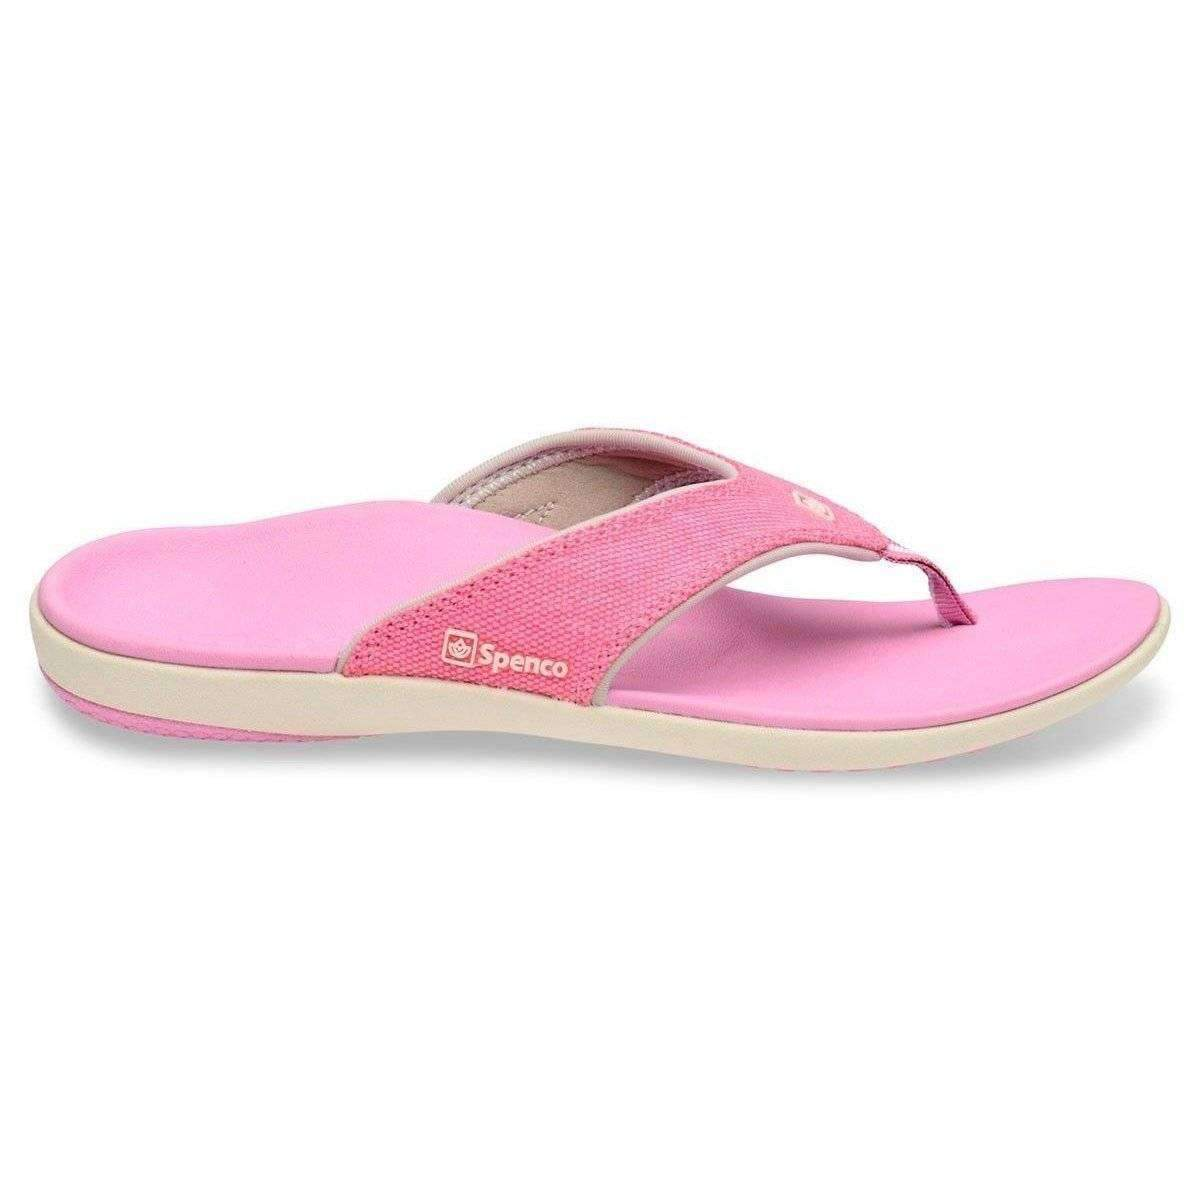 Spenco Yumi Canvas Pink Womens Total Support Sandals -8660